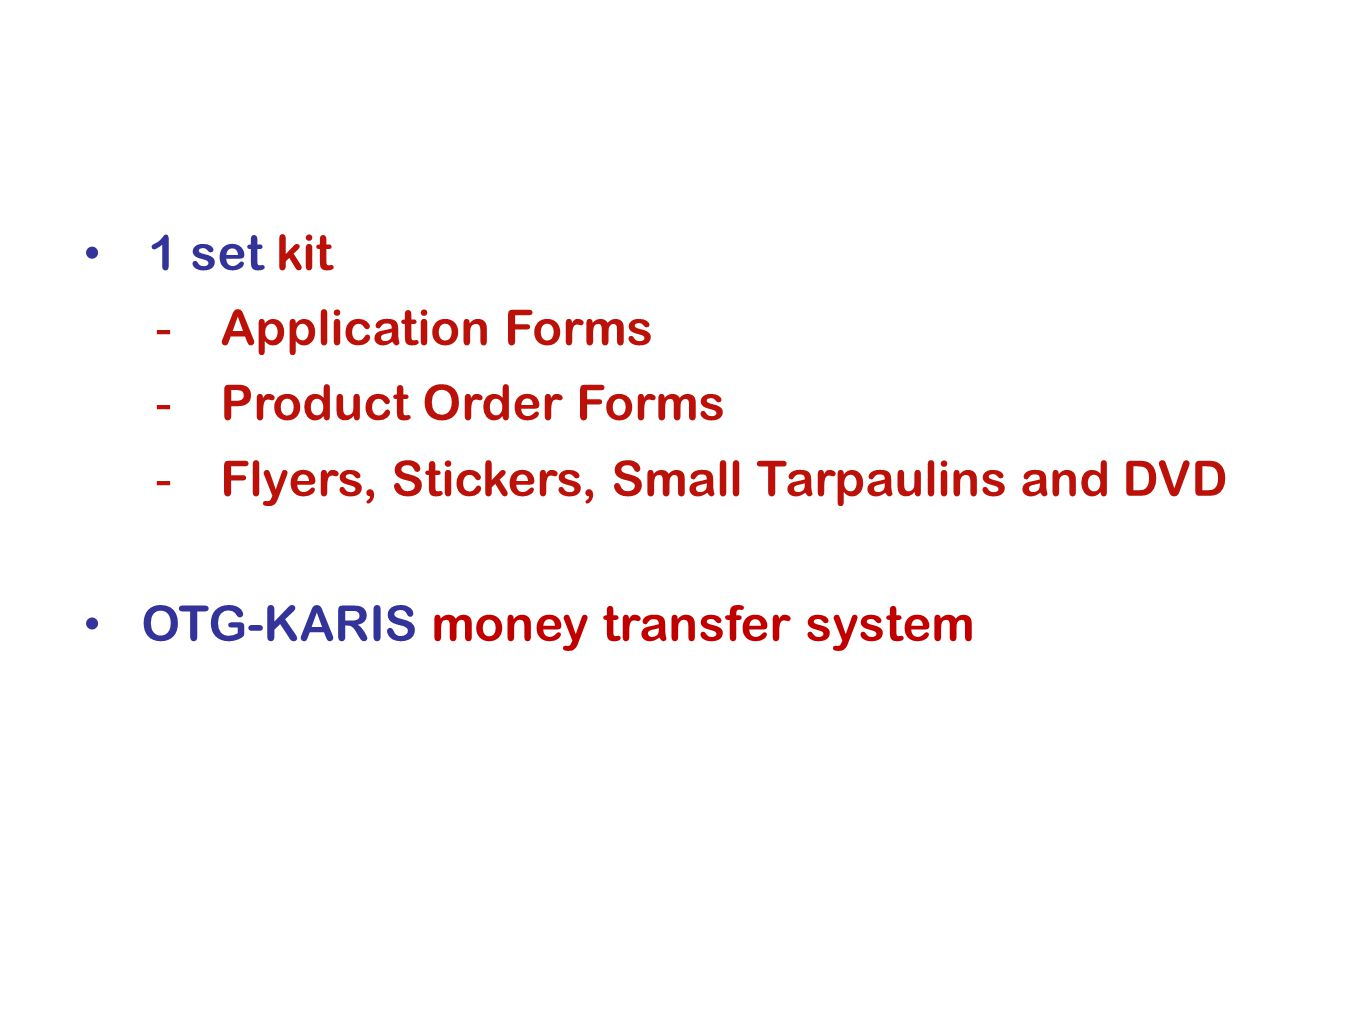 1 set kit Application Forms Product Order Forms -Flyers, Stickers, Small Tarpaulins and DVD OTG-KARIS money transfer system